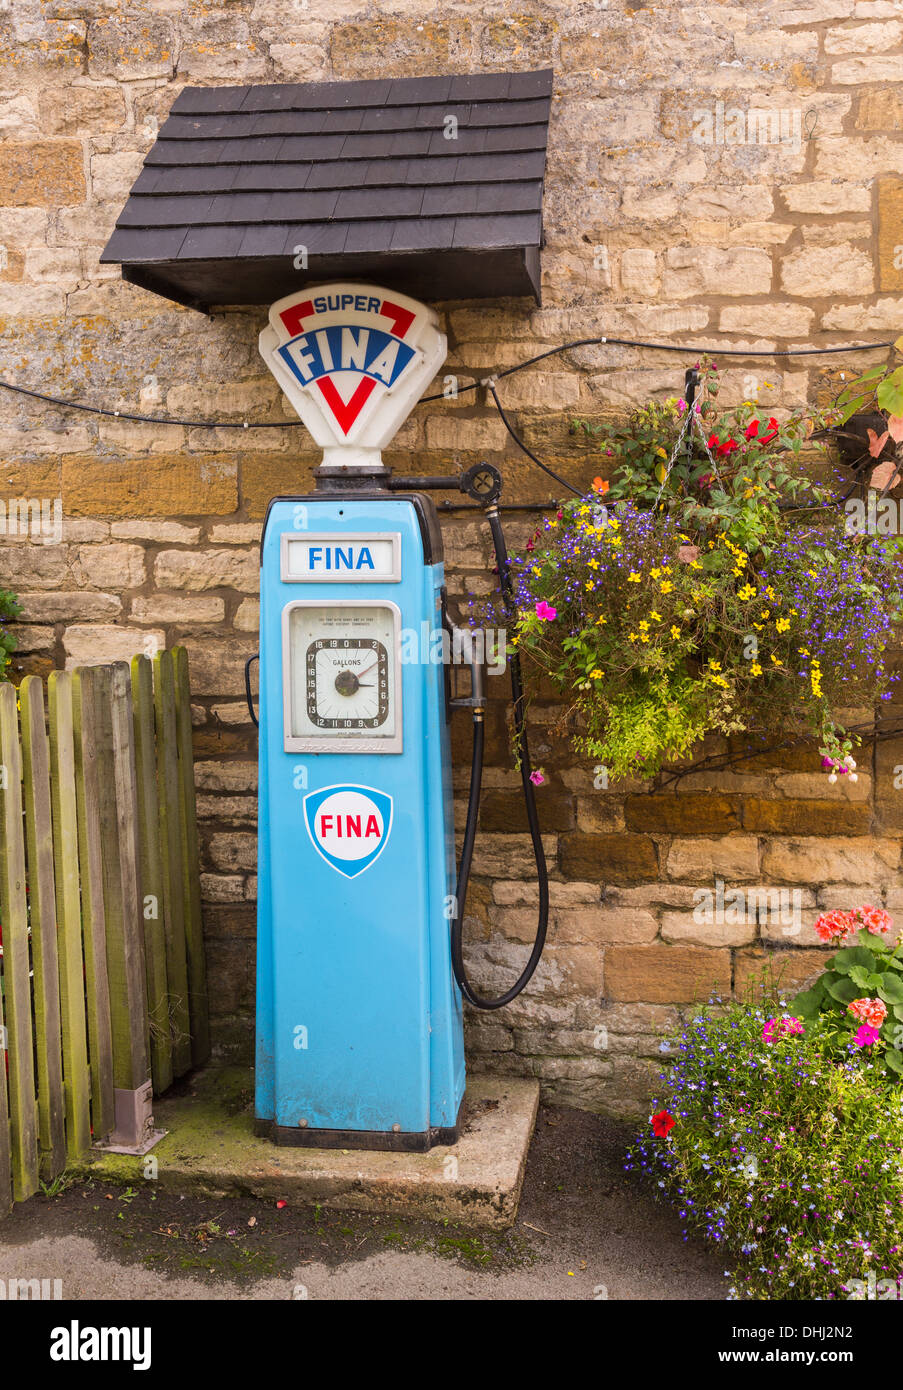 Fina Petrol pump from the 1950s at Plough Inn near Stanway in the Cotswolds, UK - Stock Image